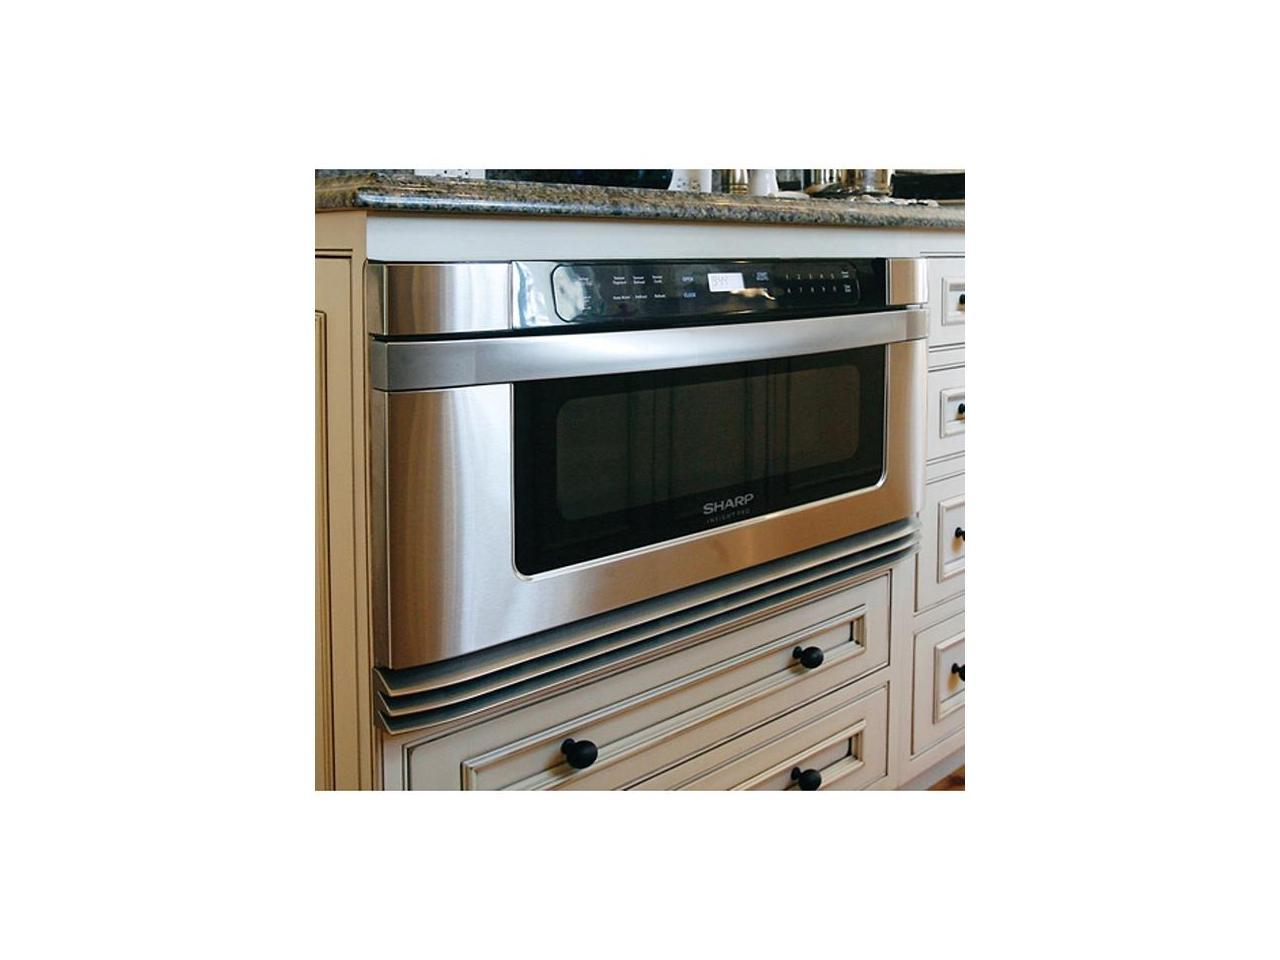 sharp kb6524ps 1 2 cu ft stainless